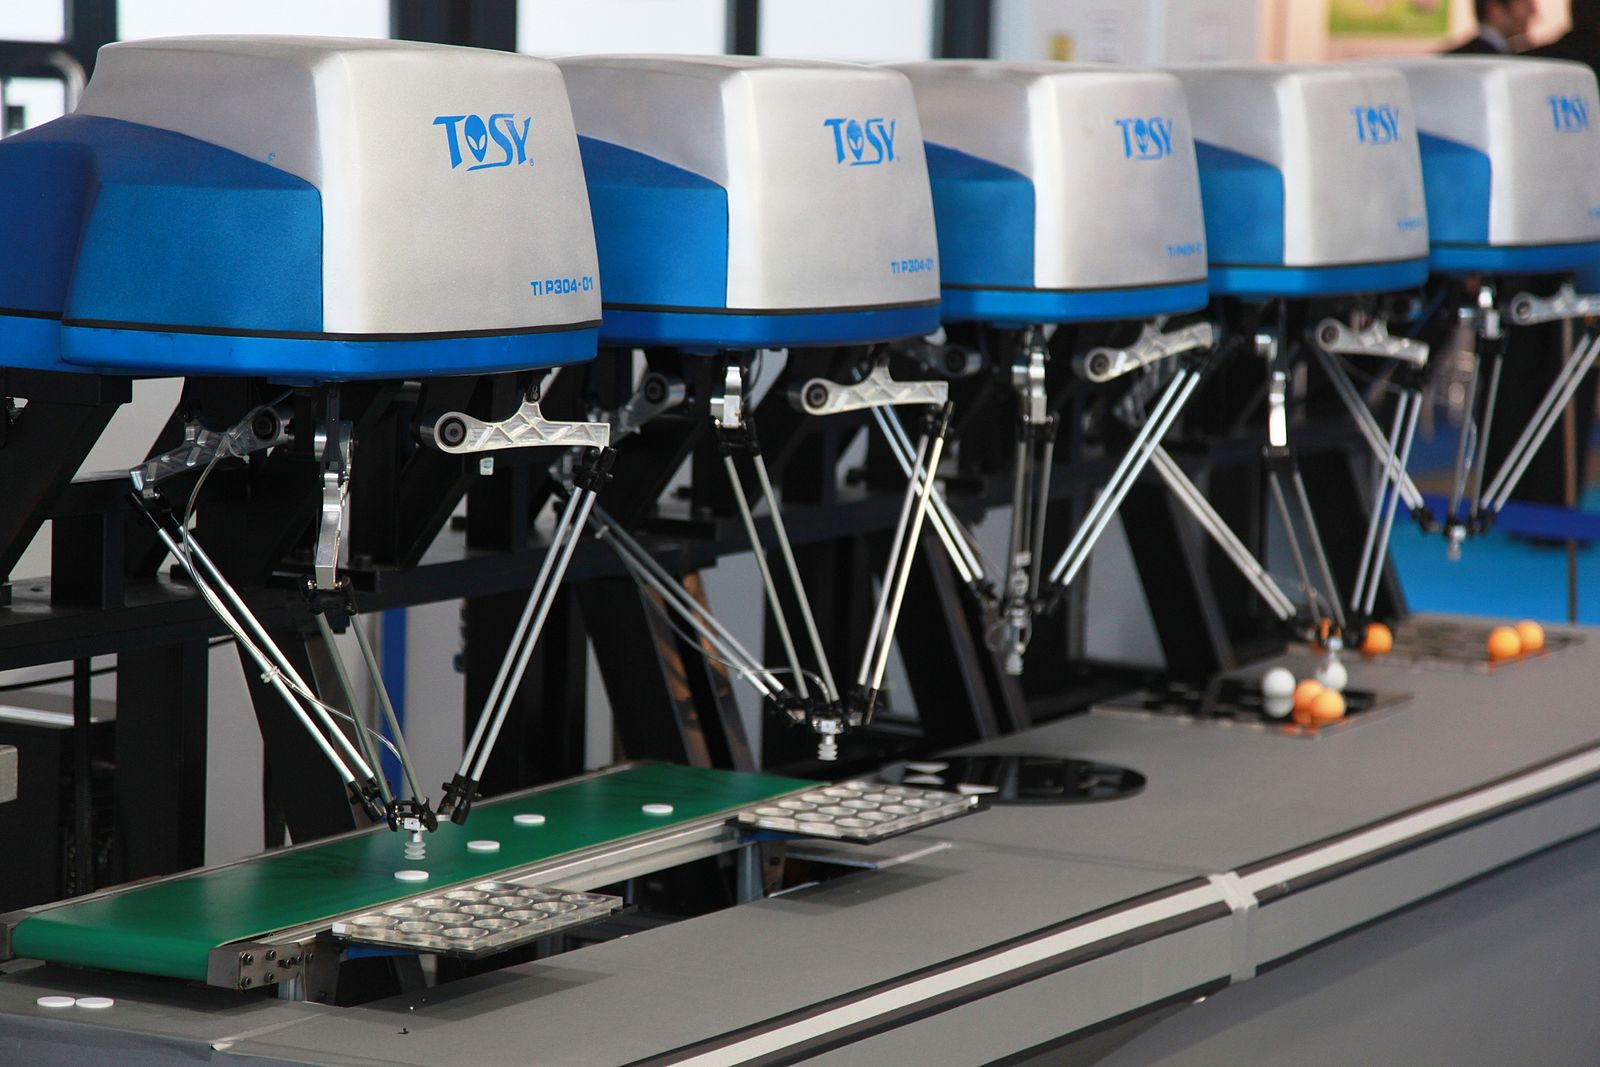 Pick and place machines are an example of physical robotic process automation